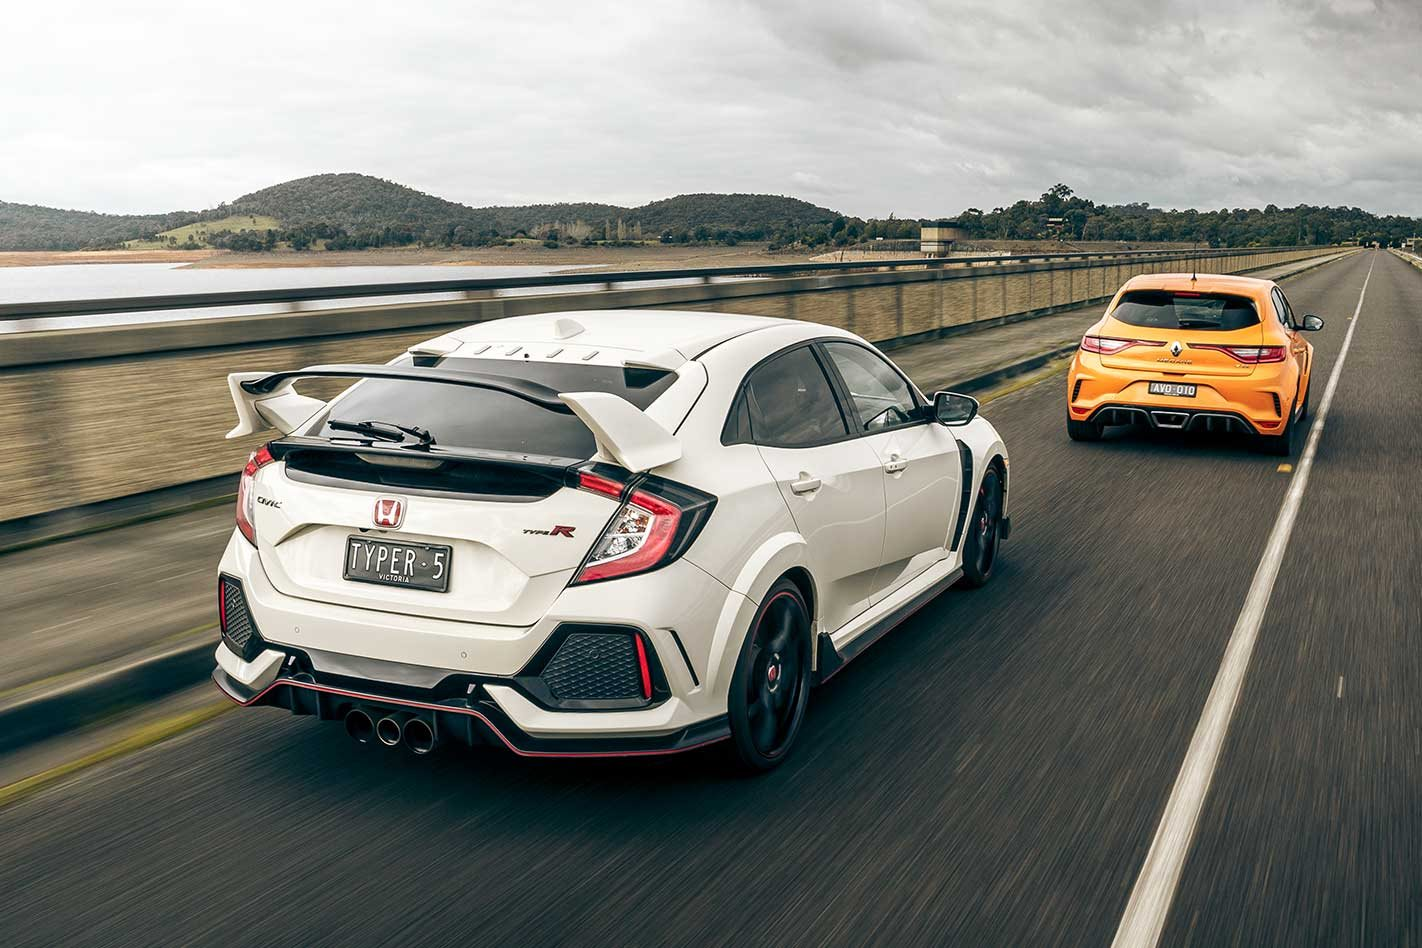 Honda Civic Type R flounders in hot hatch sales race